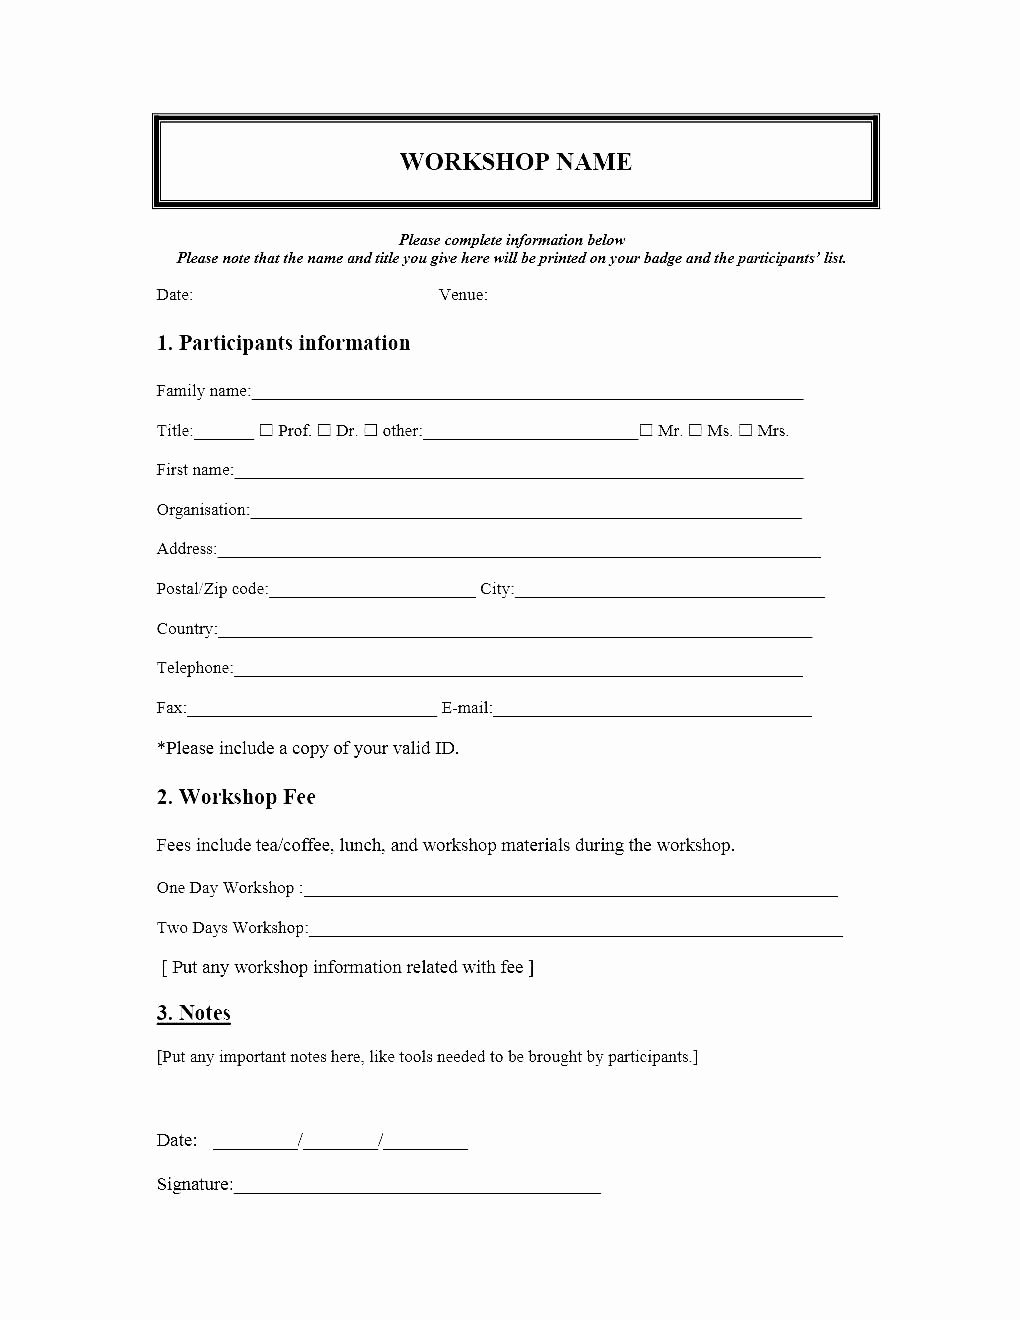 Registration form Template Word Awesome event Registration form Template Microsoft Word